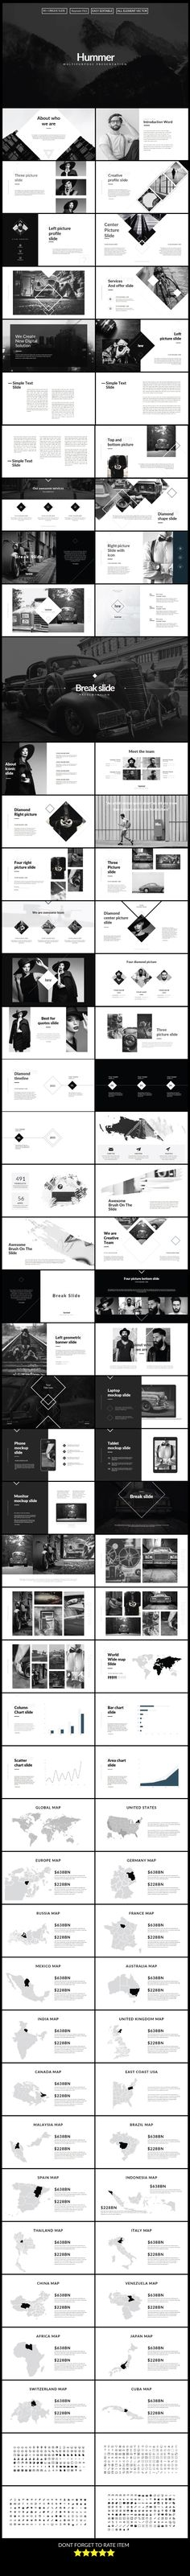 Hummer Multipurpose Keynote Presentation Template